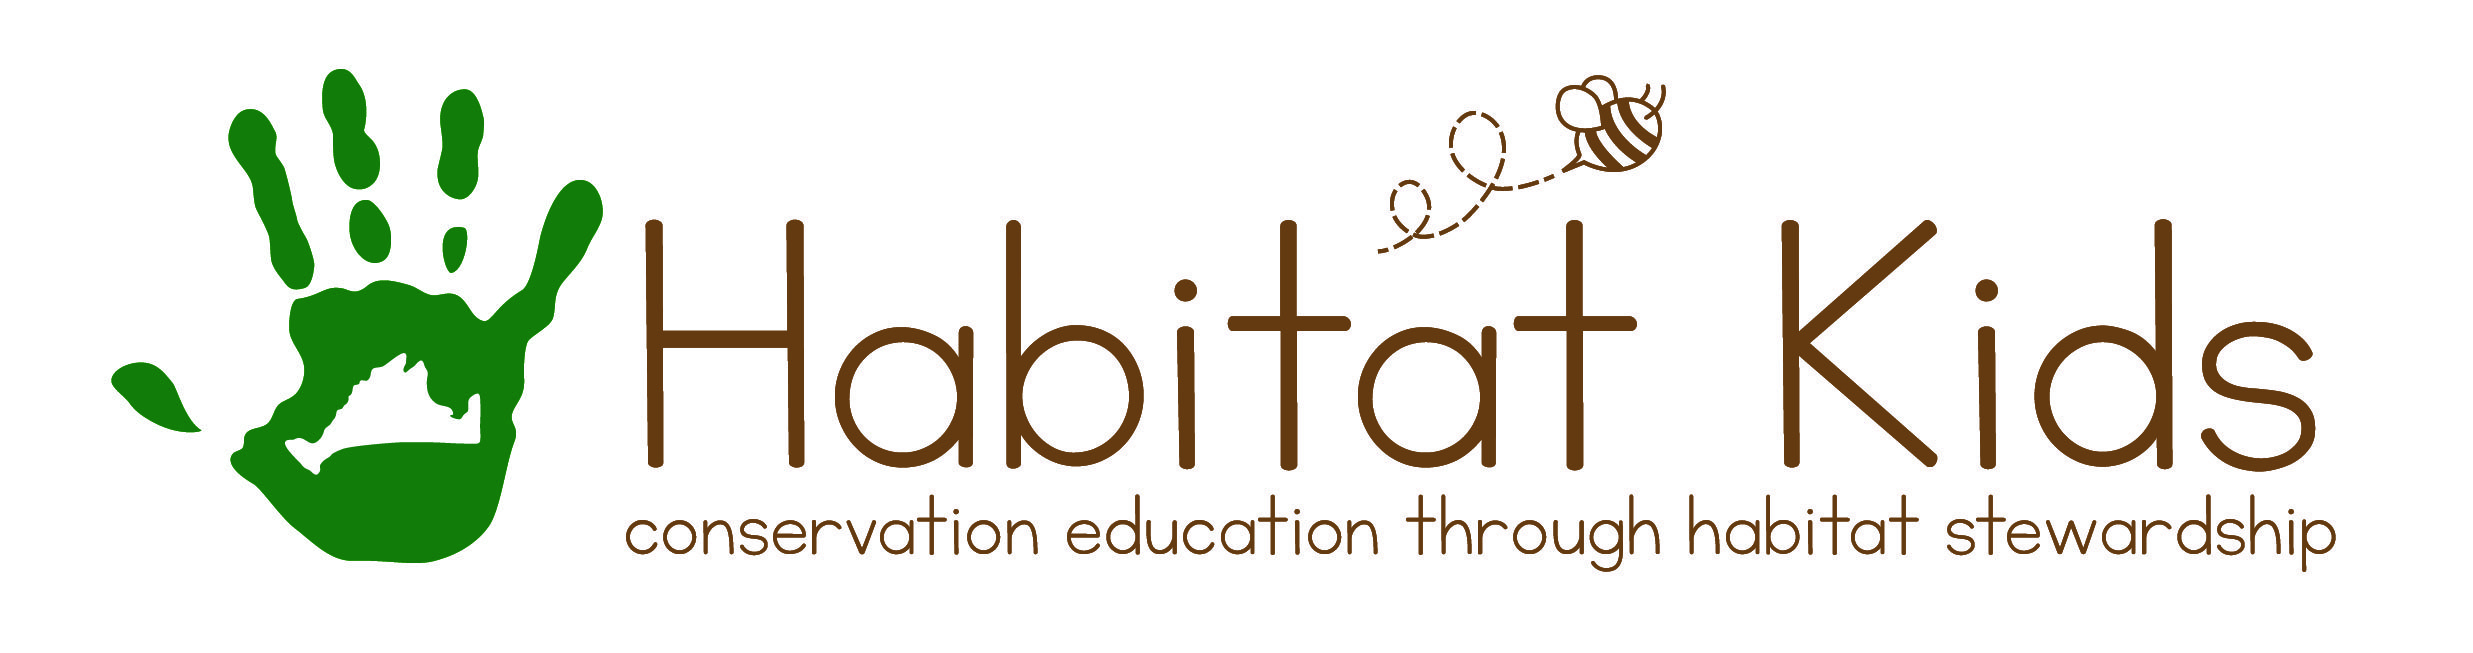 habitat_kids_logo_darkgreen